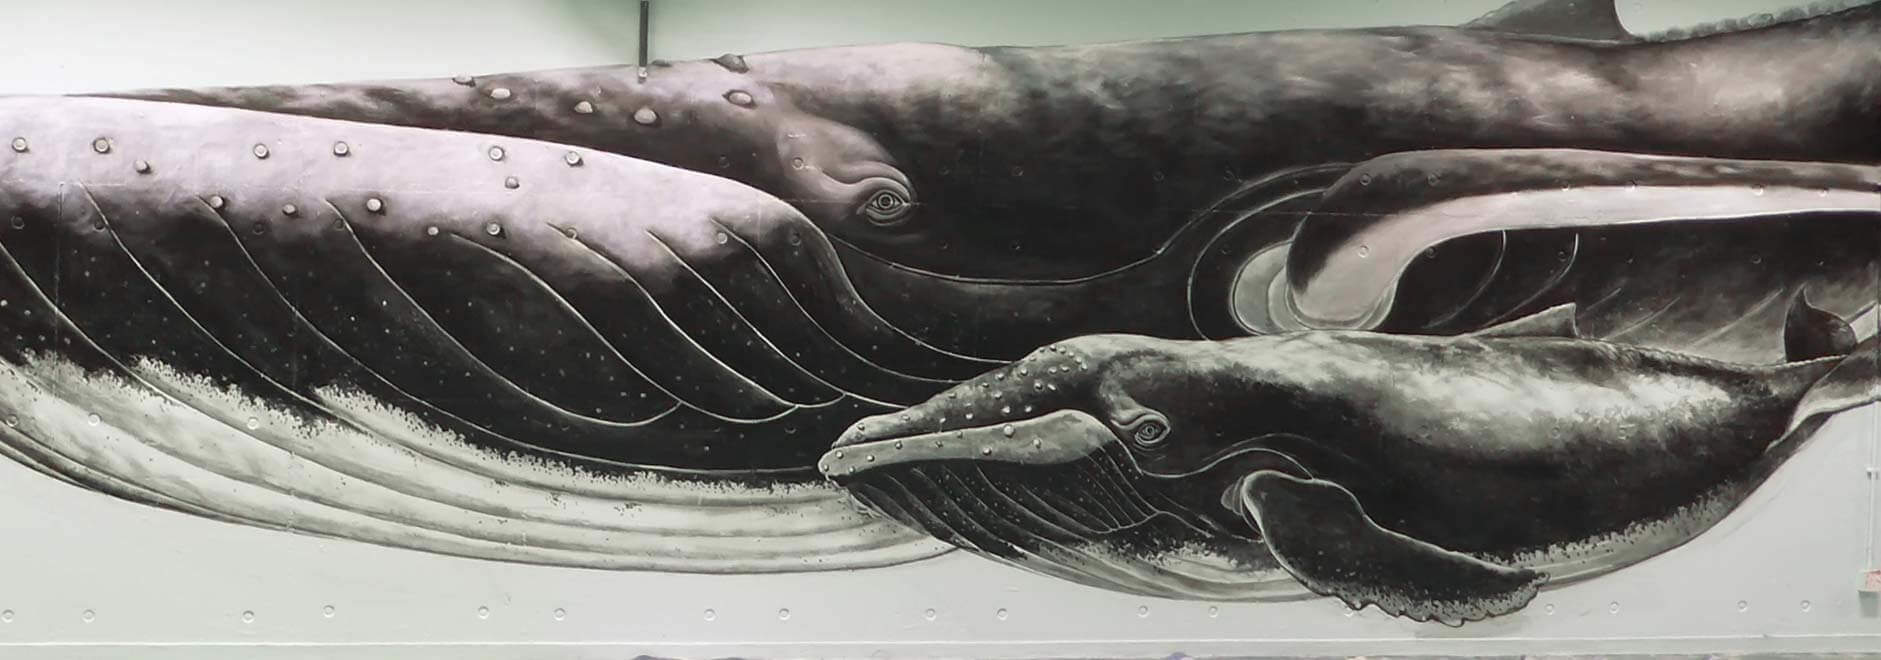 """Mural """"underwater world"""" Wall Art Painting For Alpha Mural Artist In School Project"""